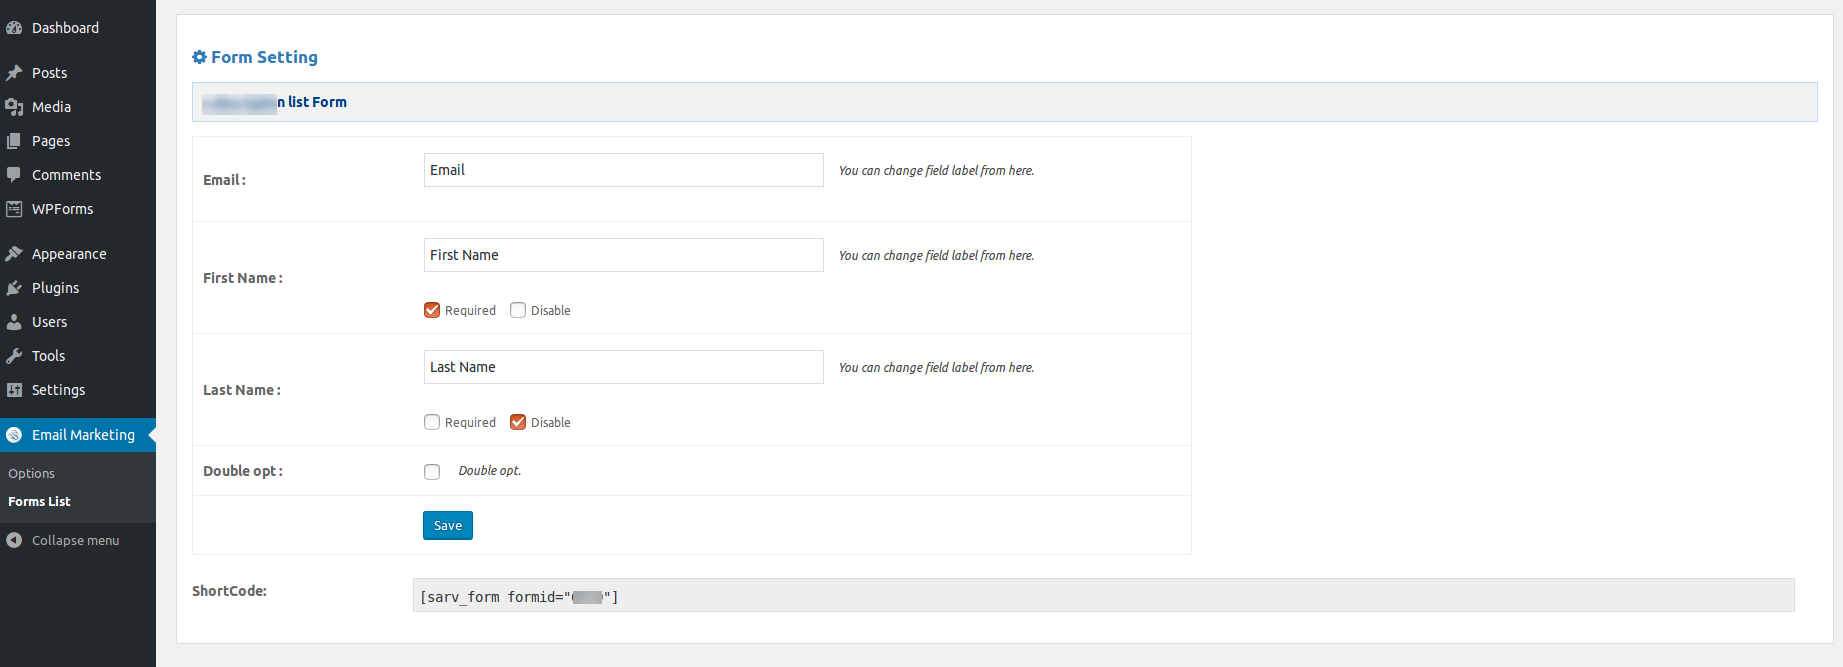 pAdmin page - Form Settings/p